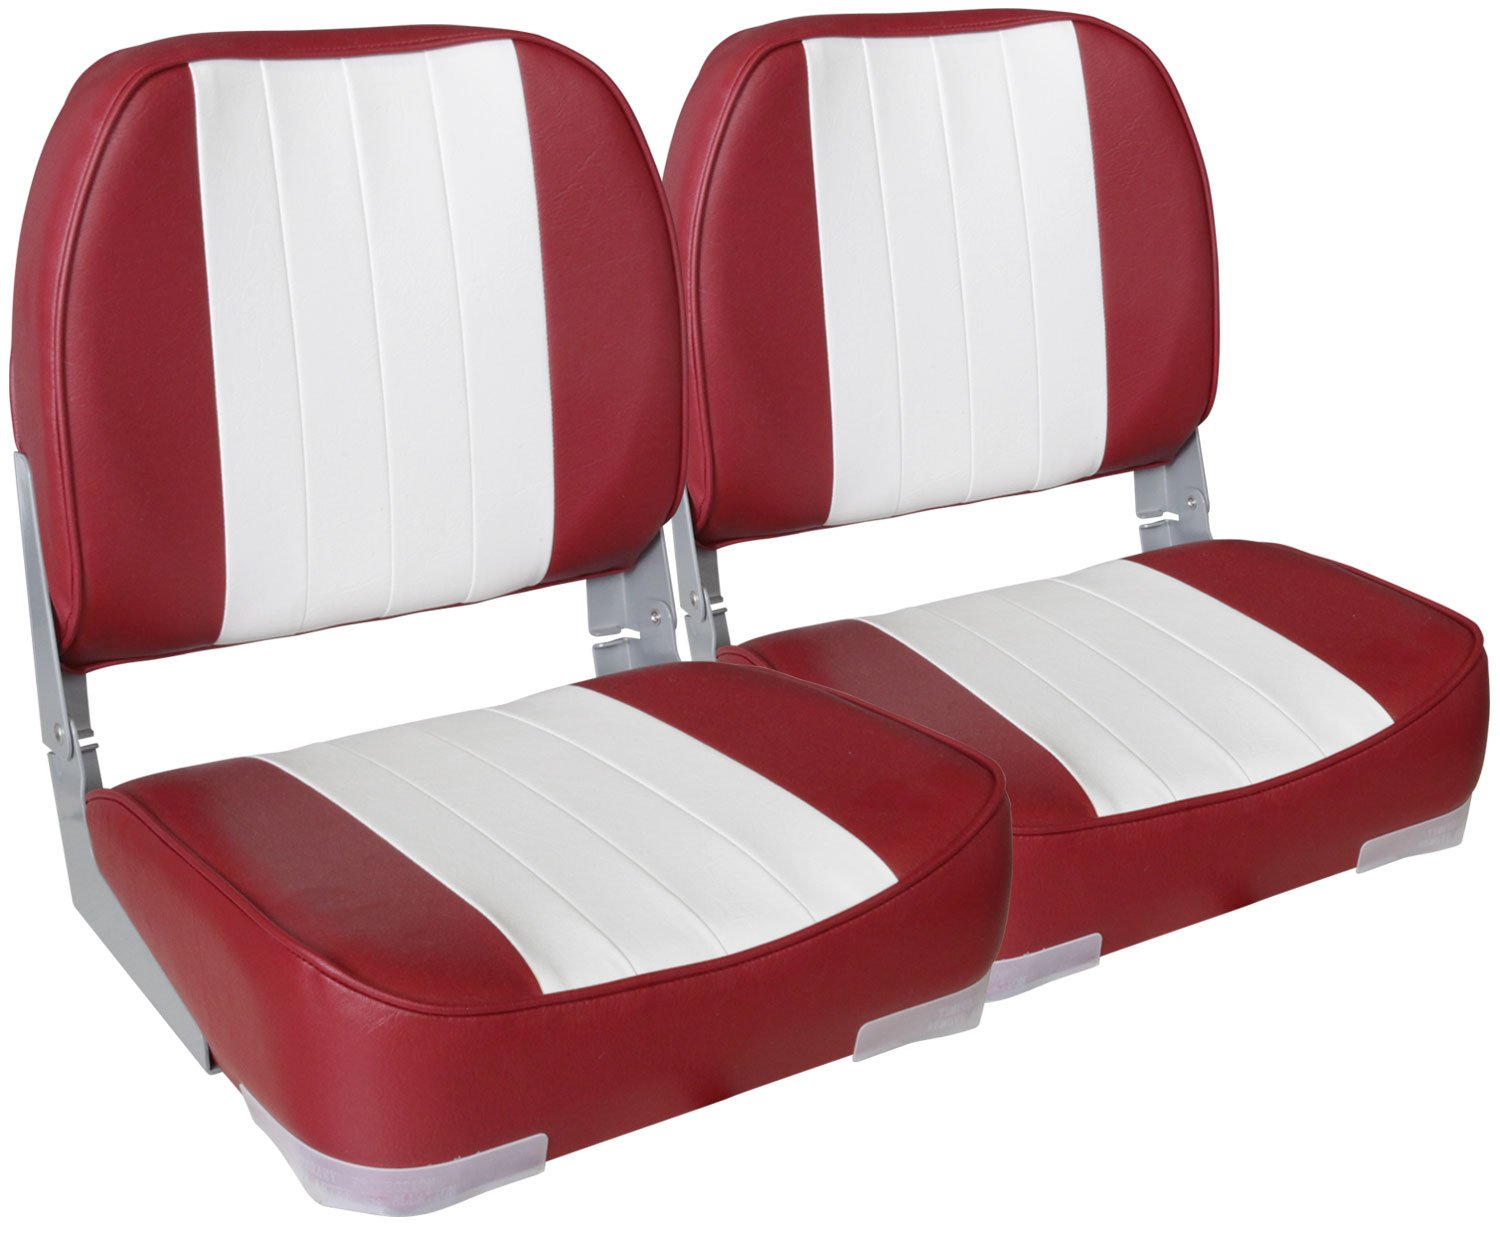 Leader Accessories A Pair of New Low Back Folding Boat Seats(2 Seats) (White/Red) by Leader Accessories